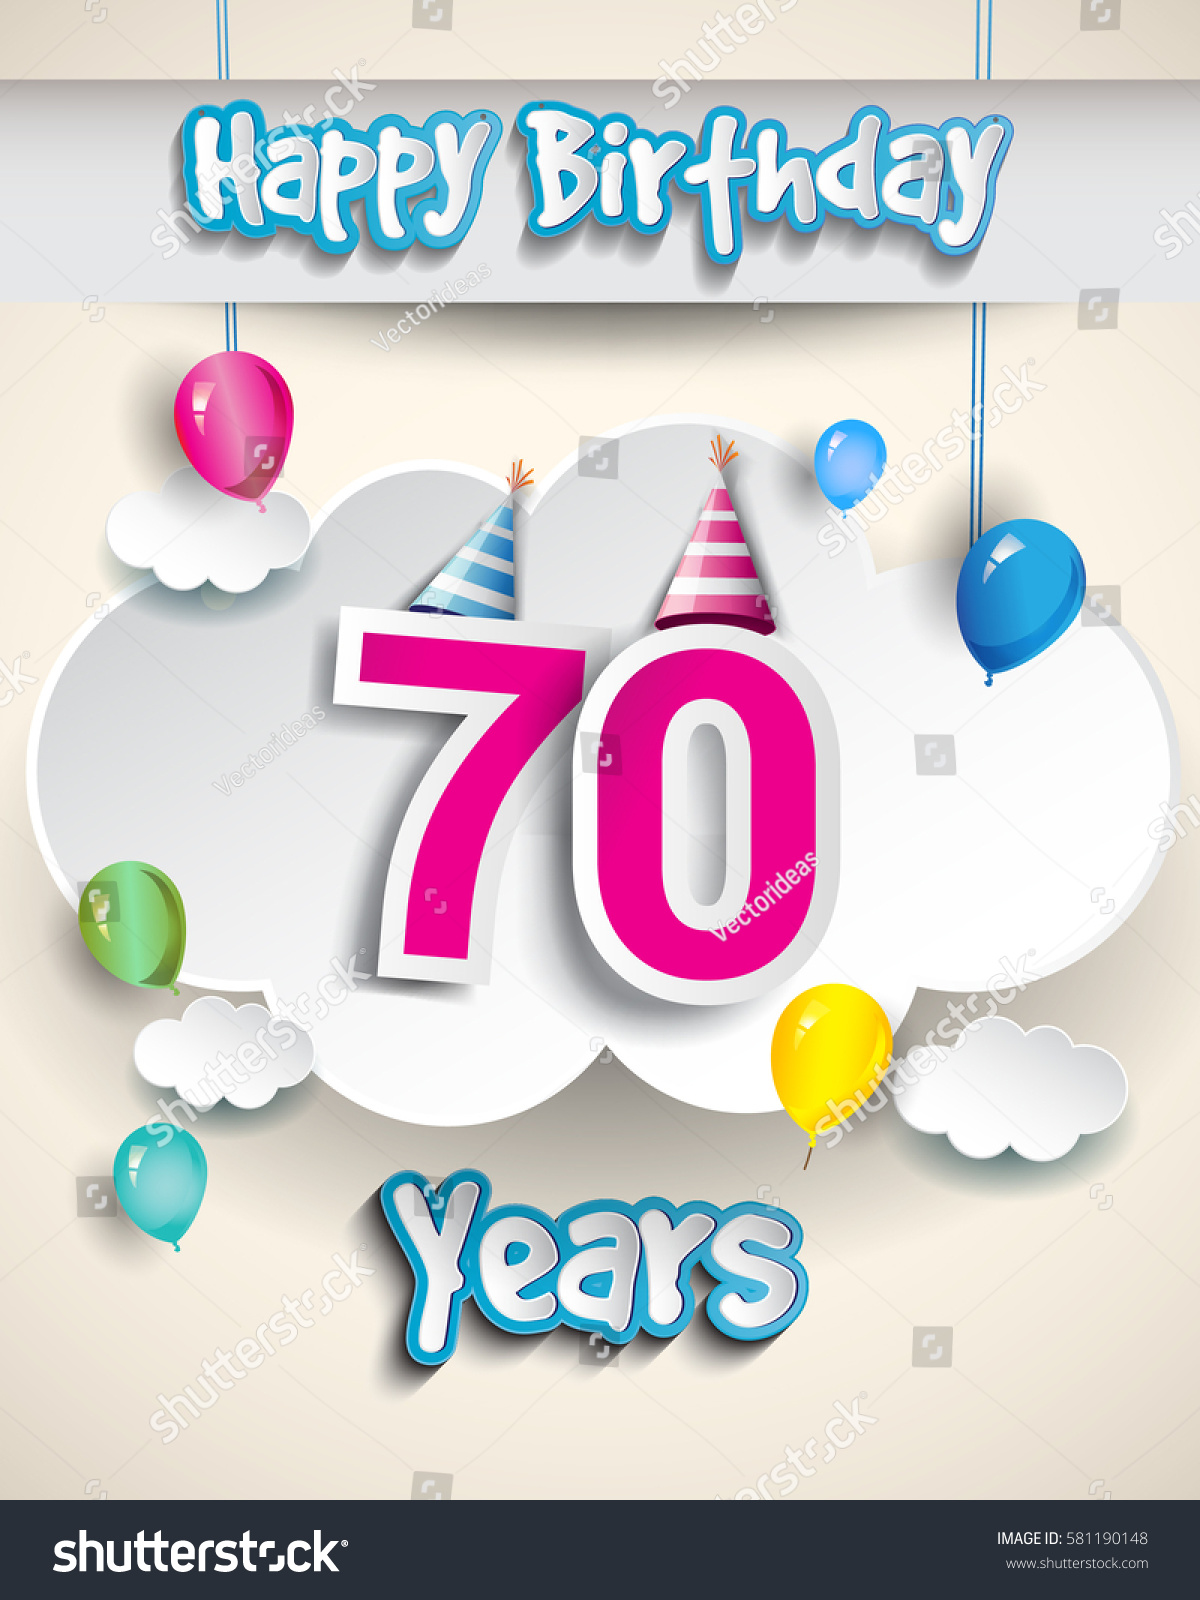 70th Birthday Celebration Design Clouds Balloons Stock Vector ...